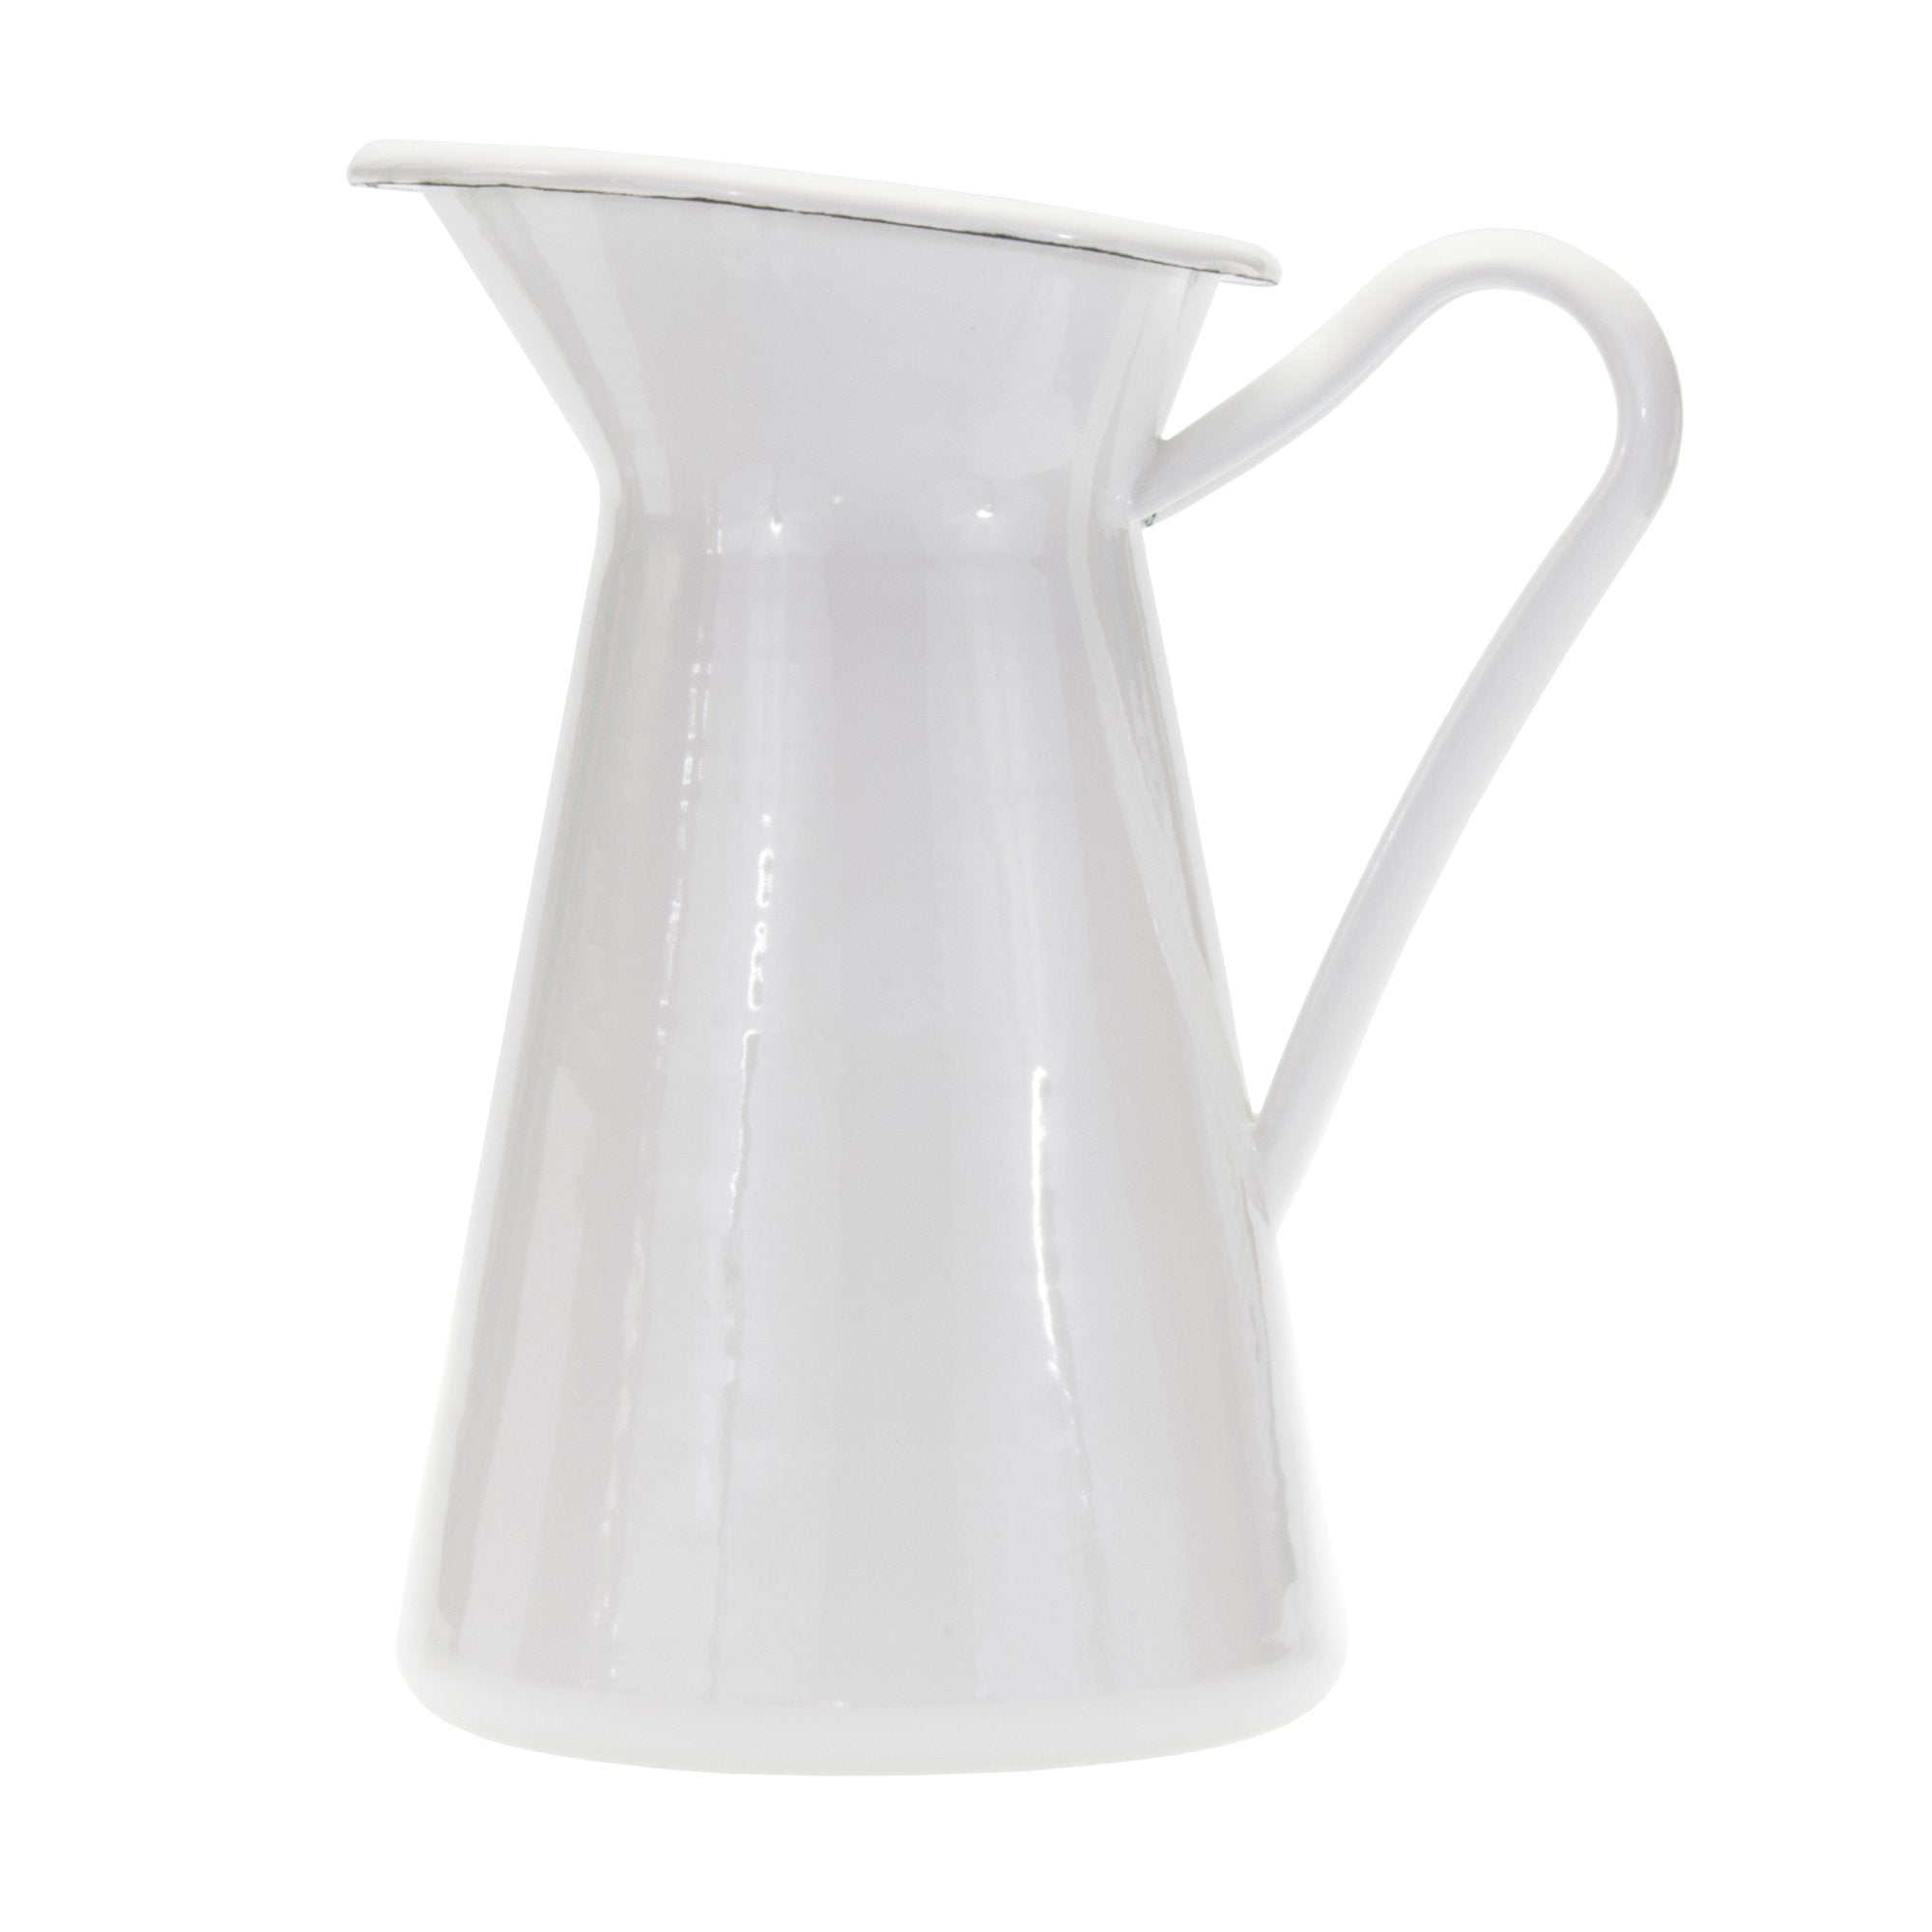 WW67- Solid White - Enamelware - Pitcher by Golden Rabbit